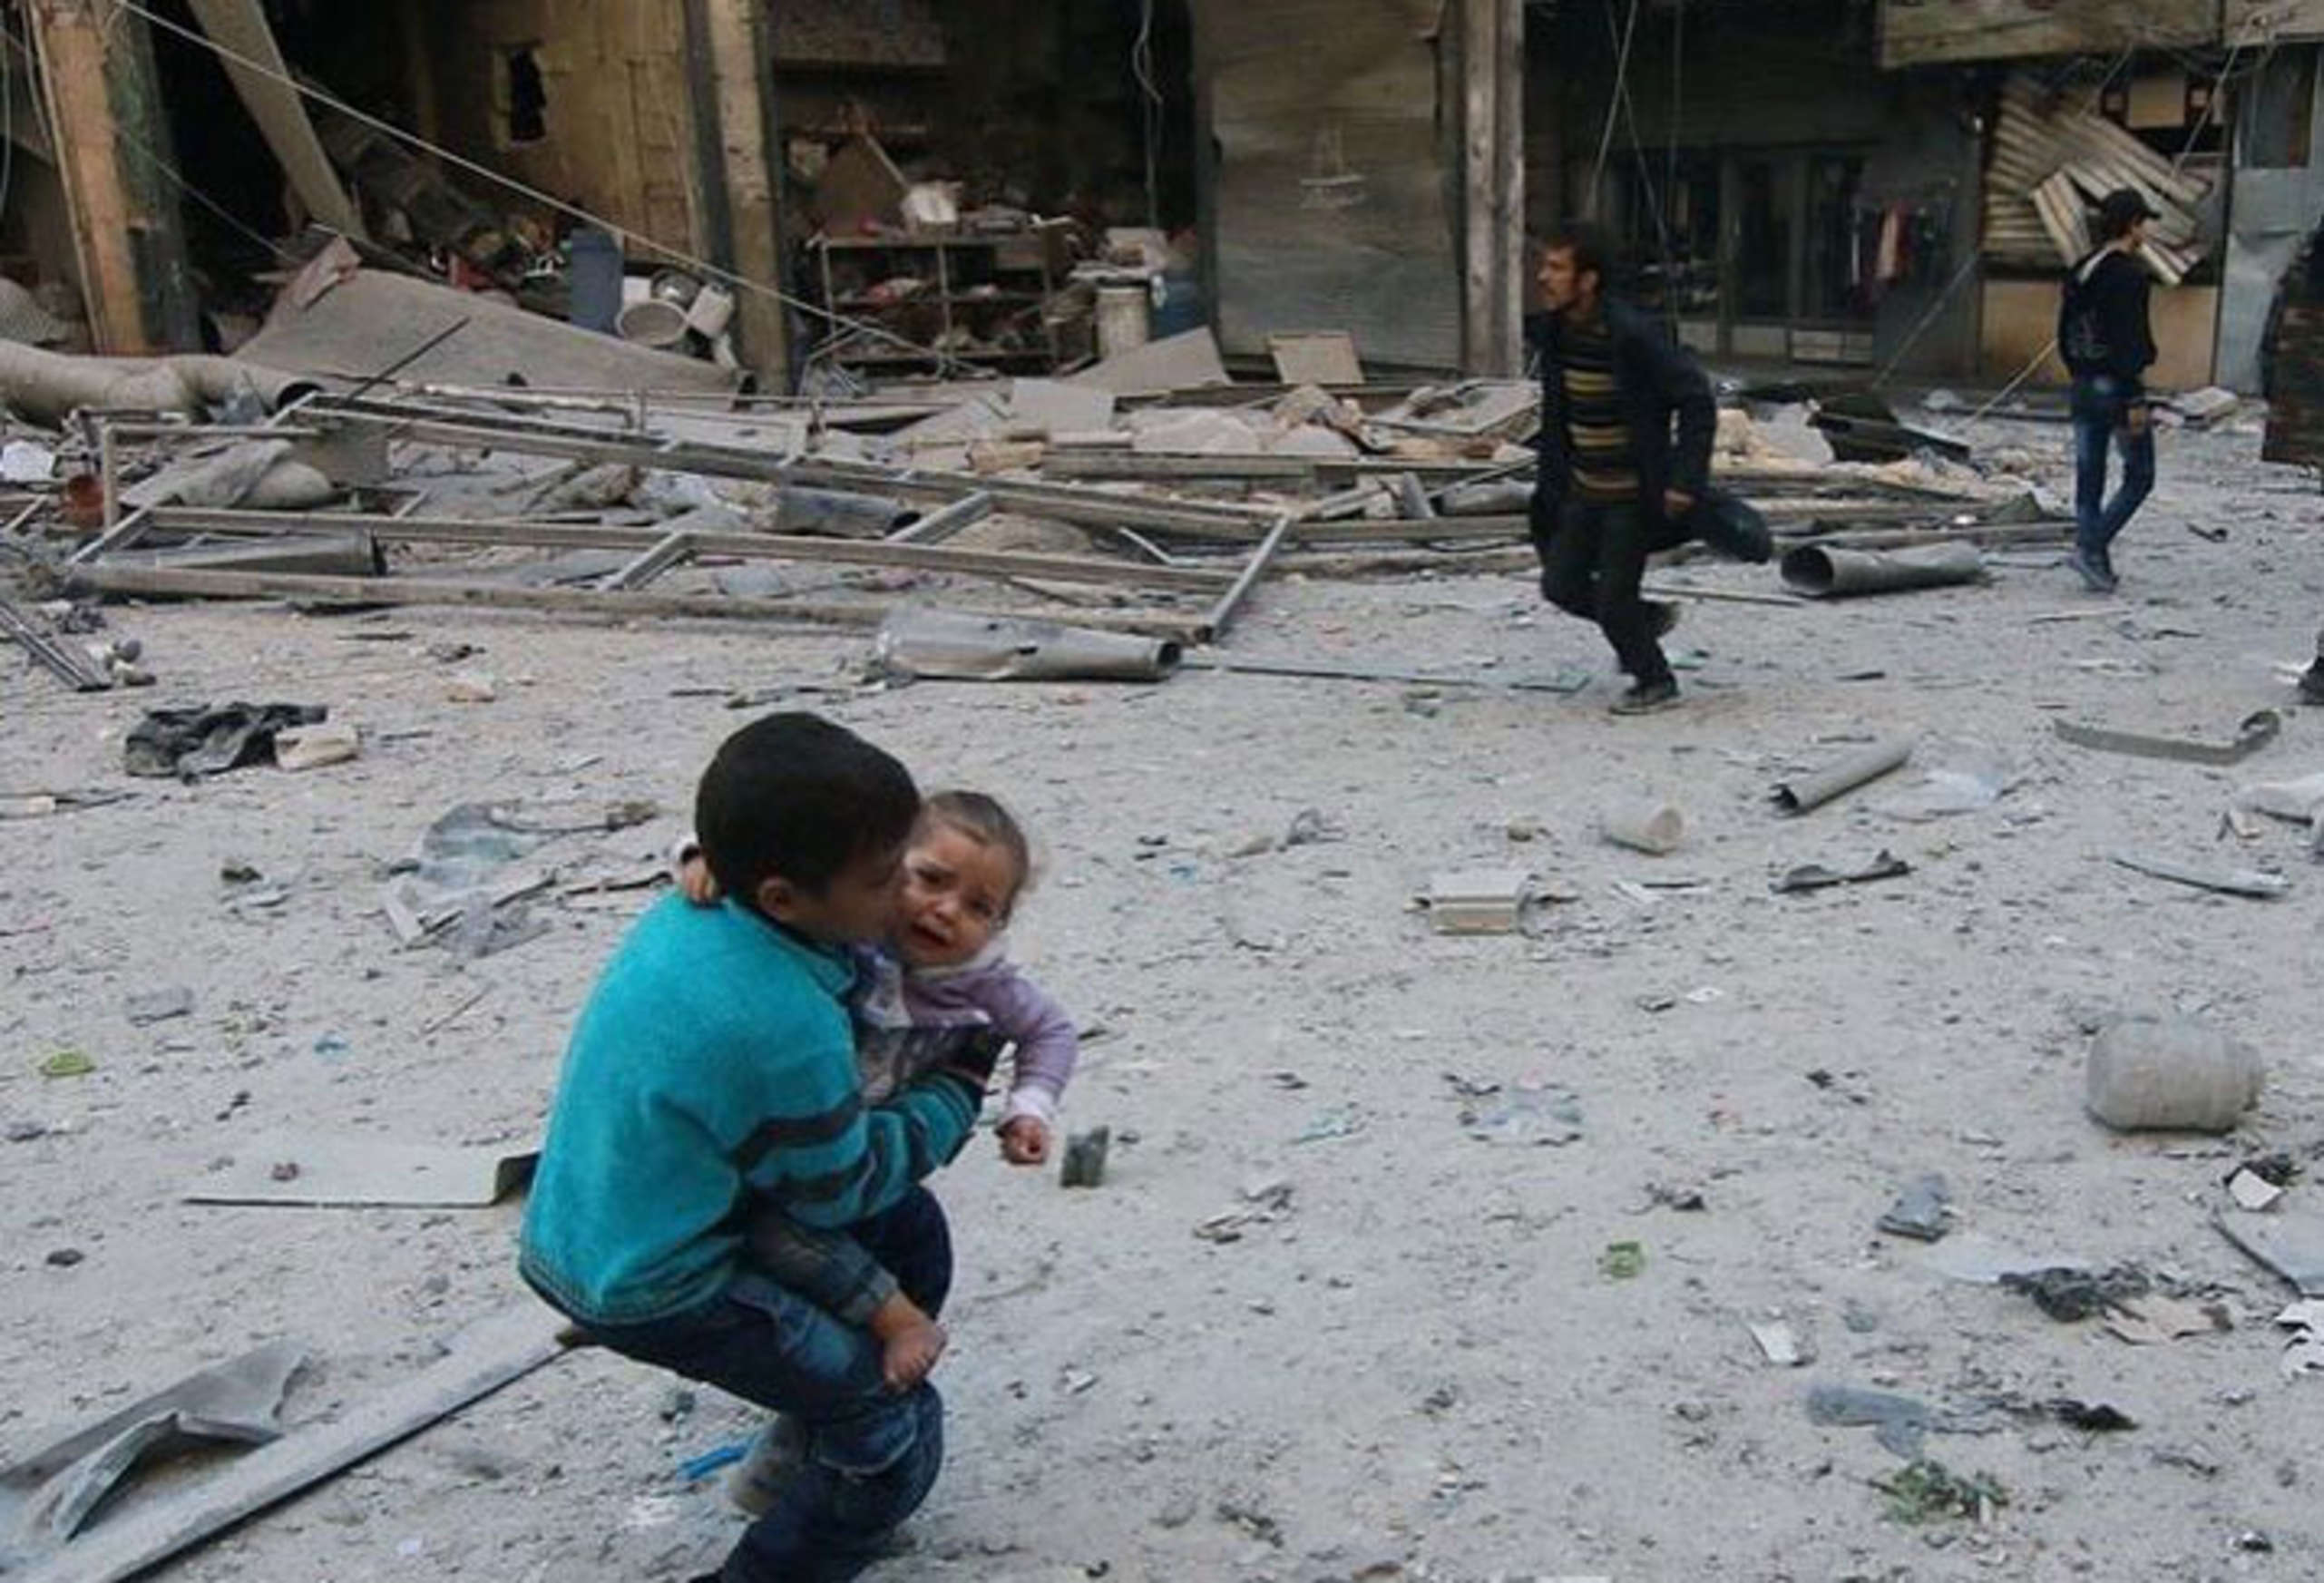 Aleppo, where we work with partners to protect children every day.